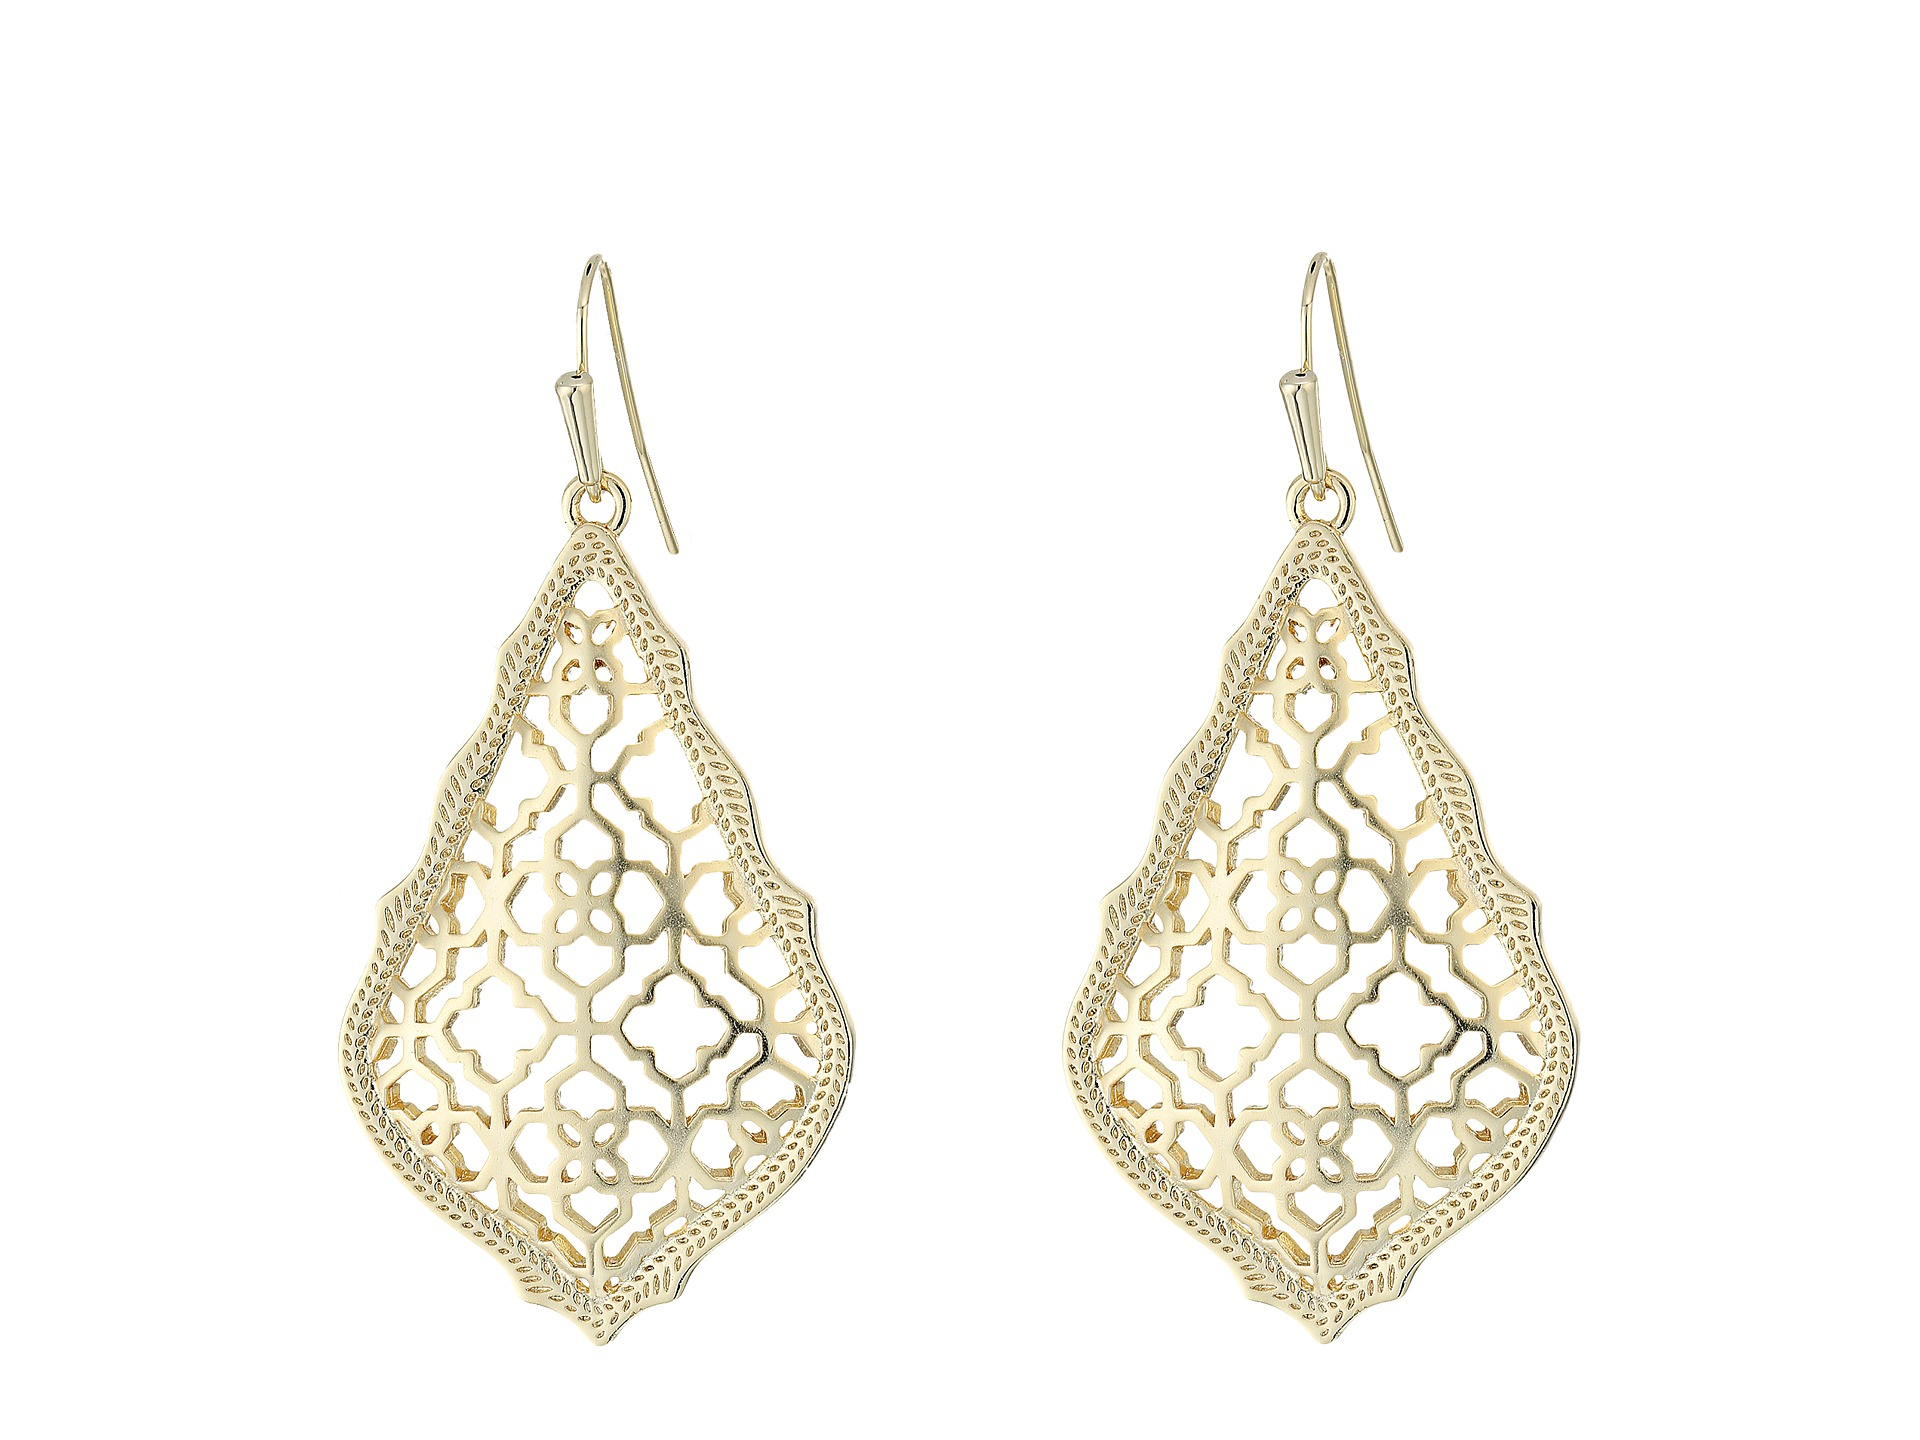 Kendra Scott Addie Earrings at Zappos.com